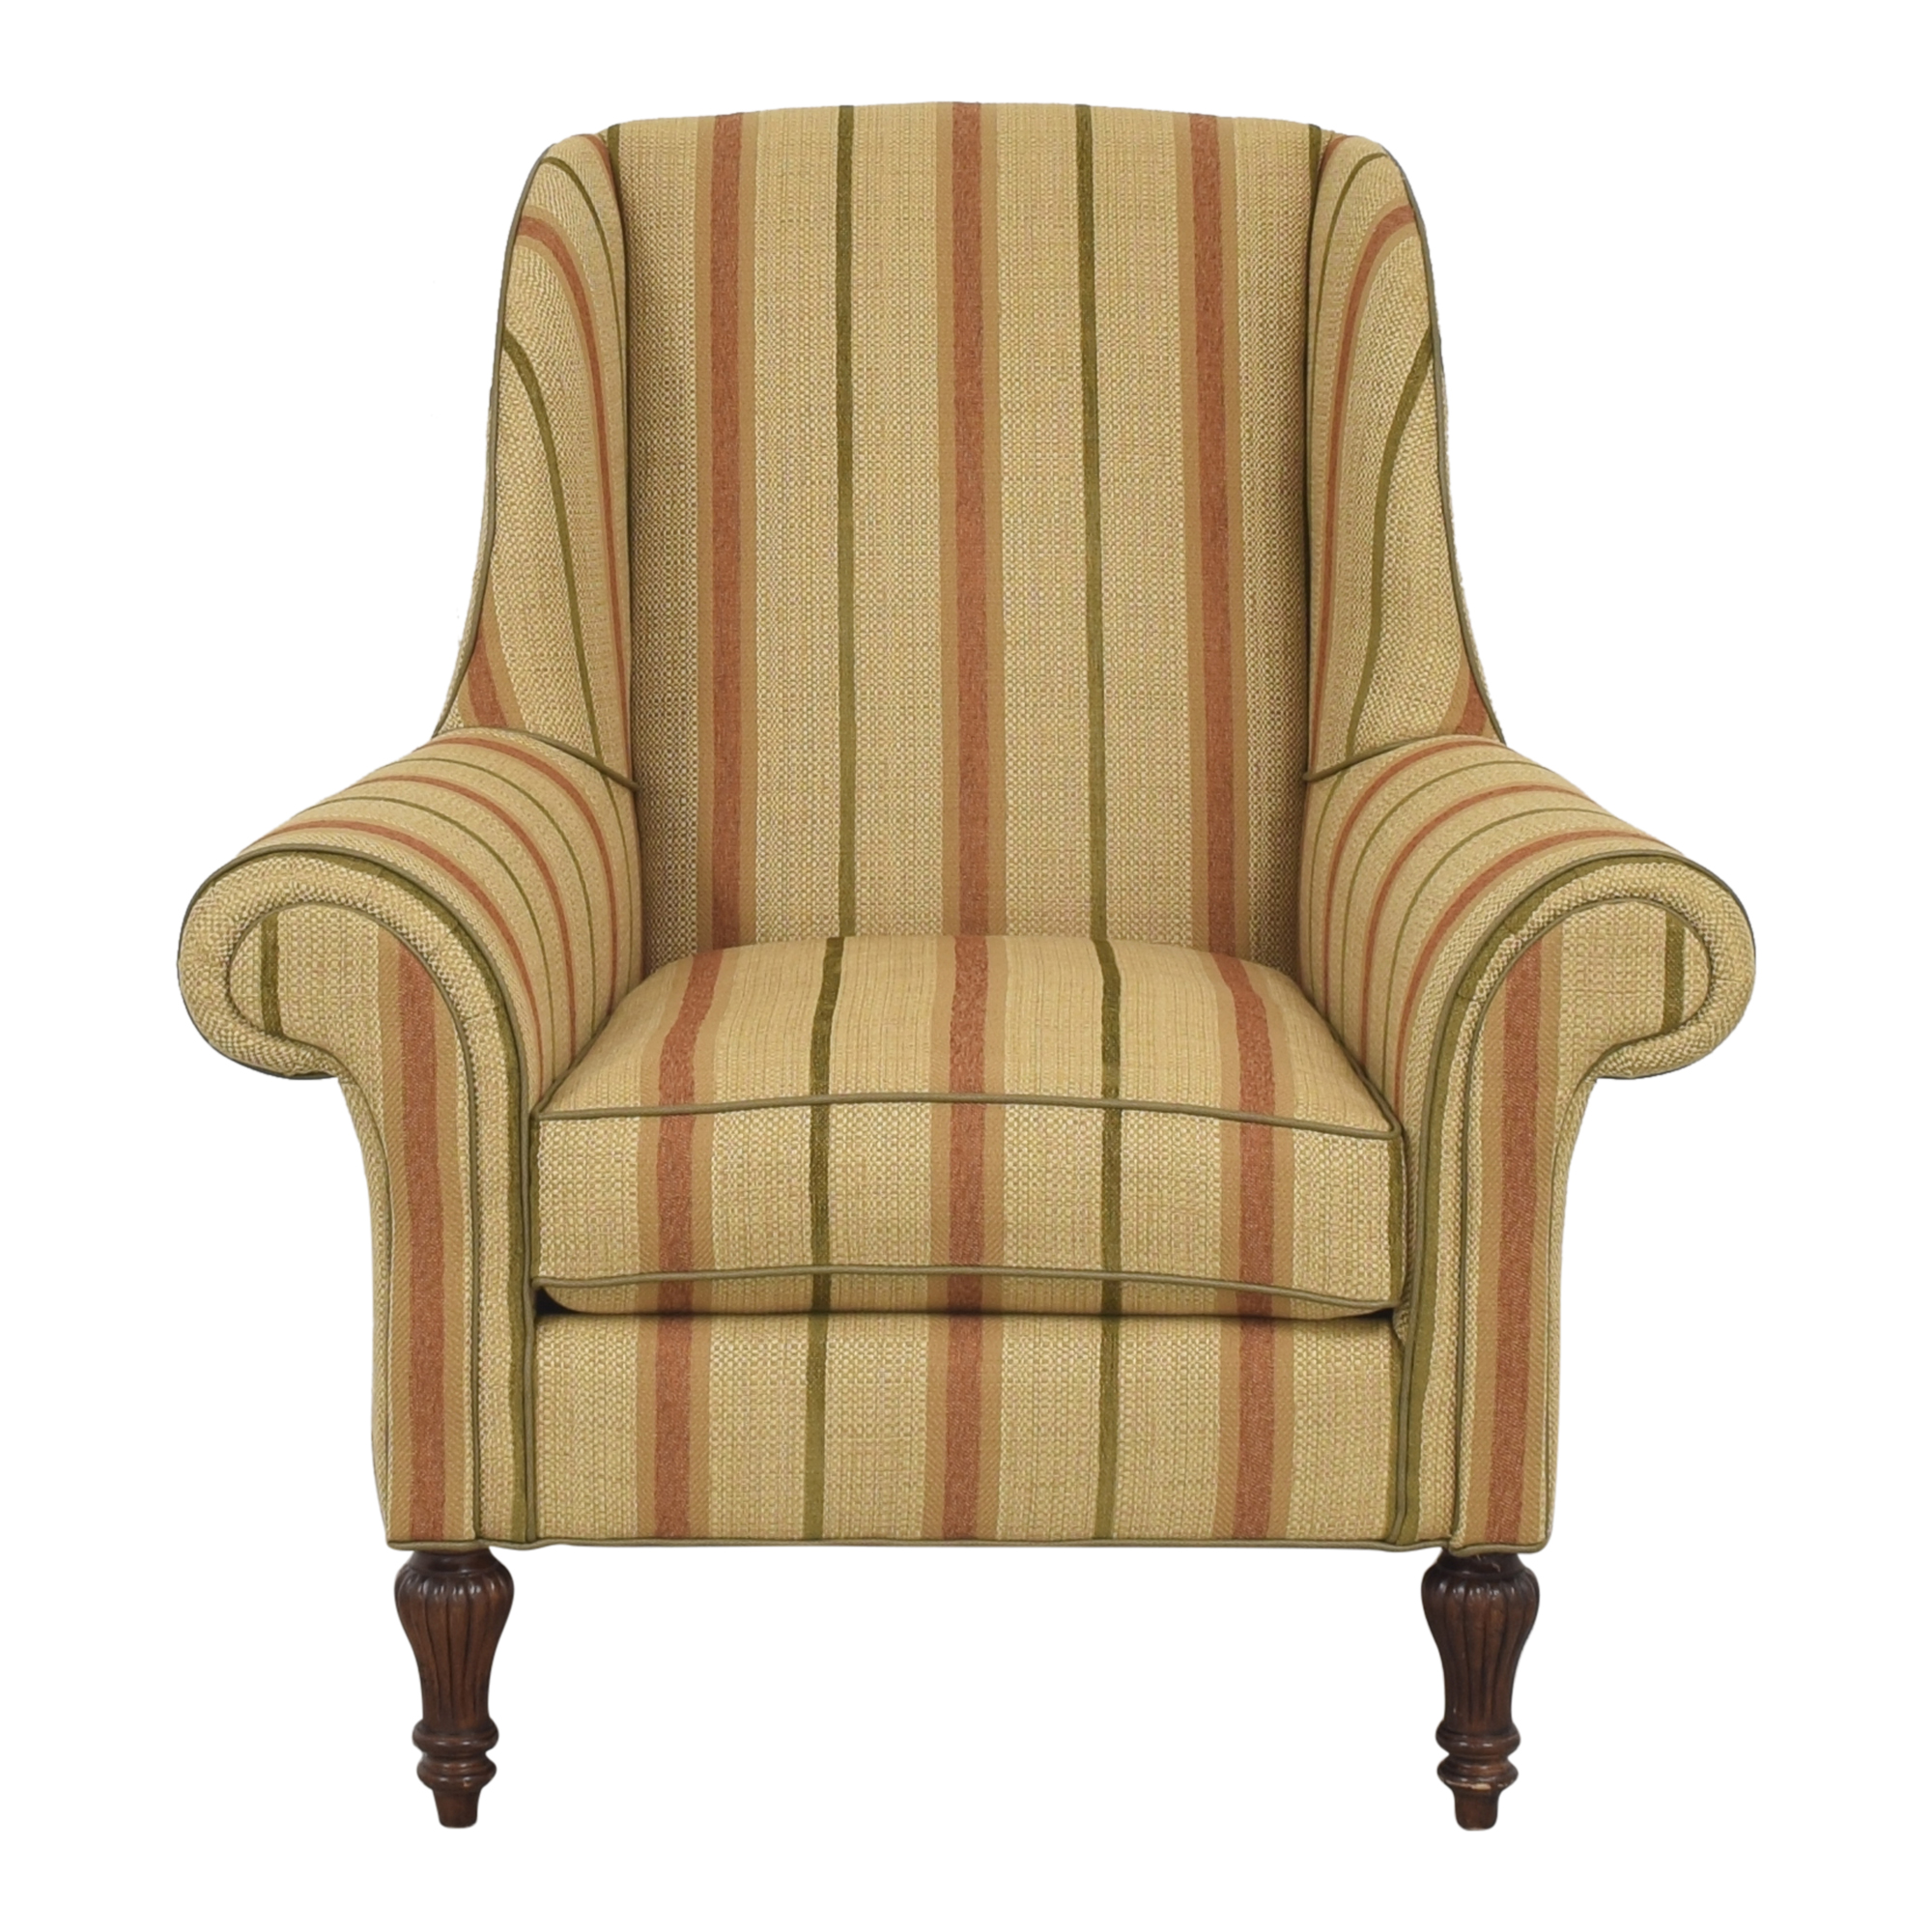 Thomasville Striped Wingback Chair / Accent Chairs